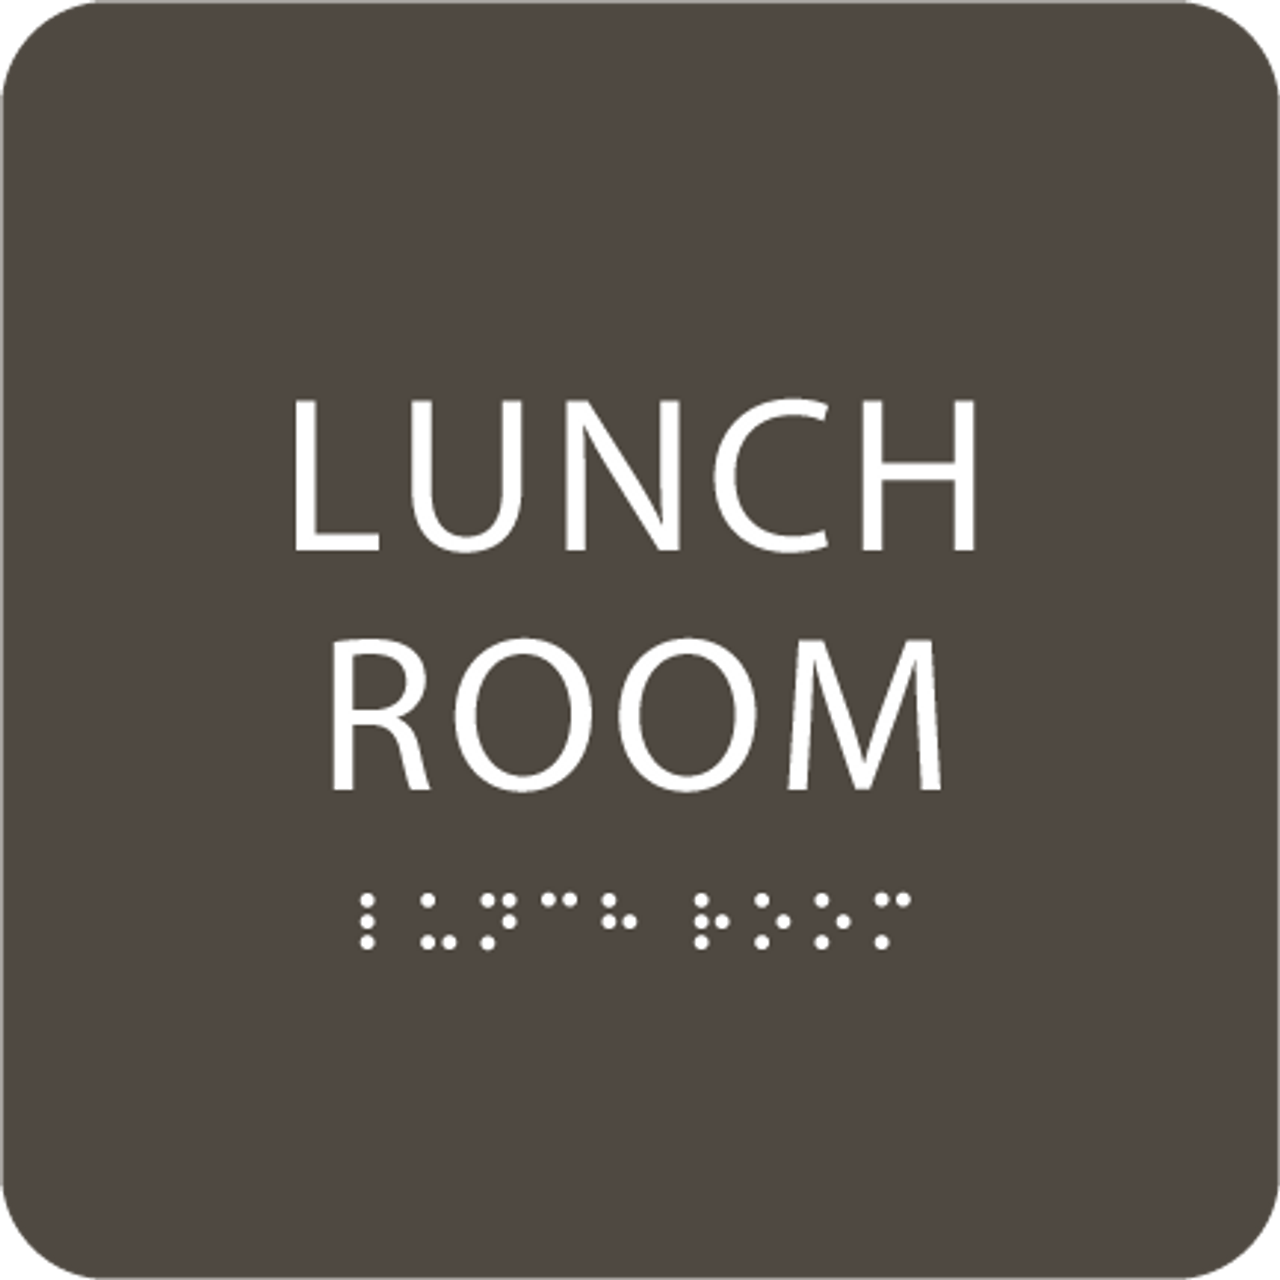 Olive Lunch Room ADA Sign